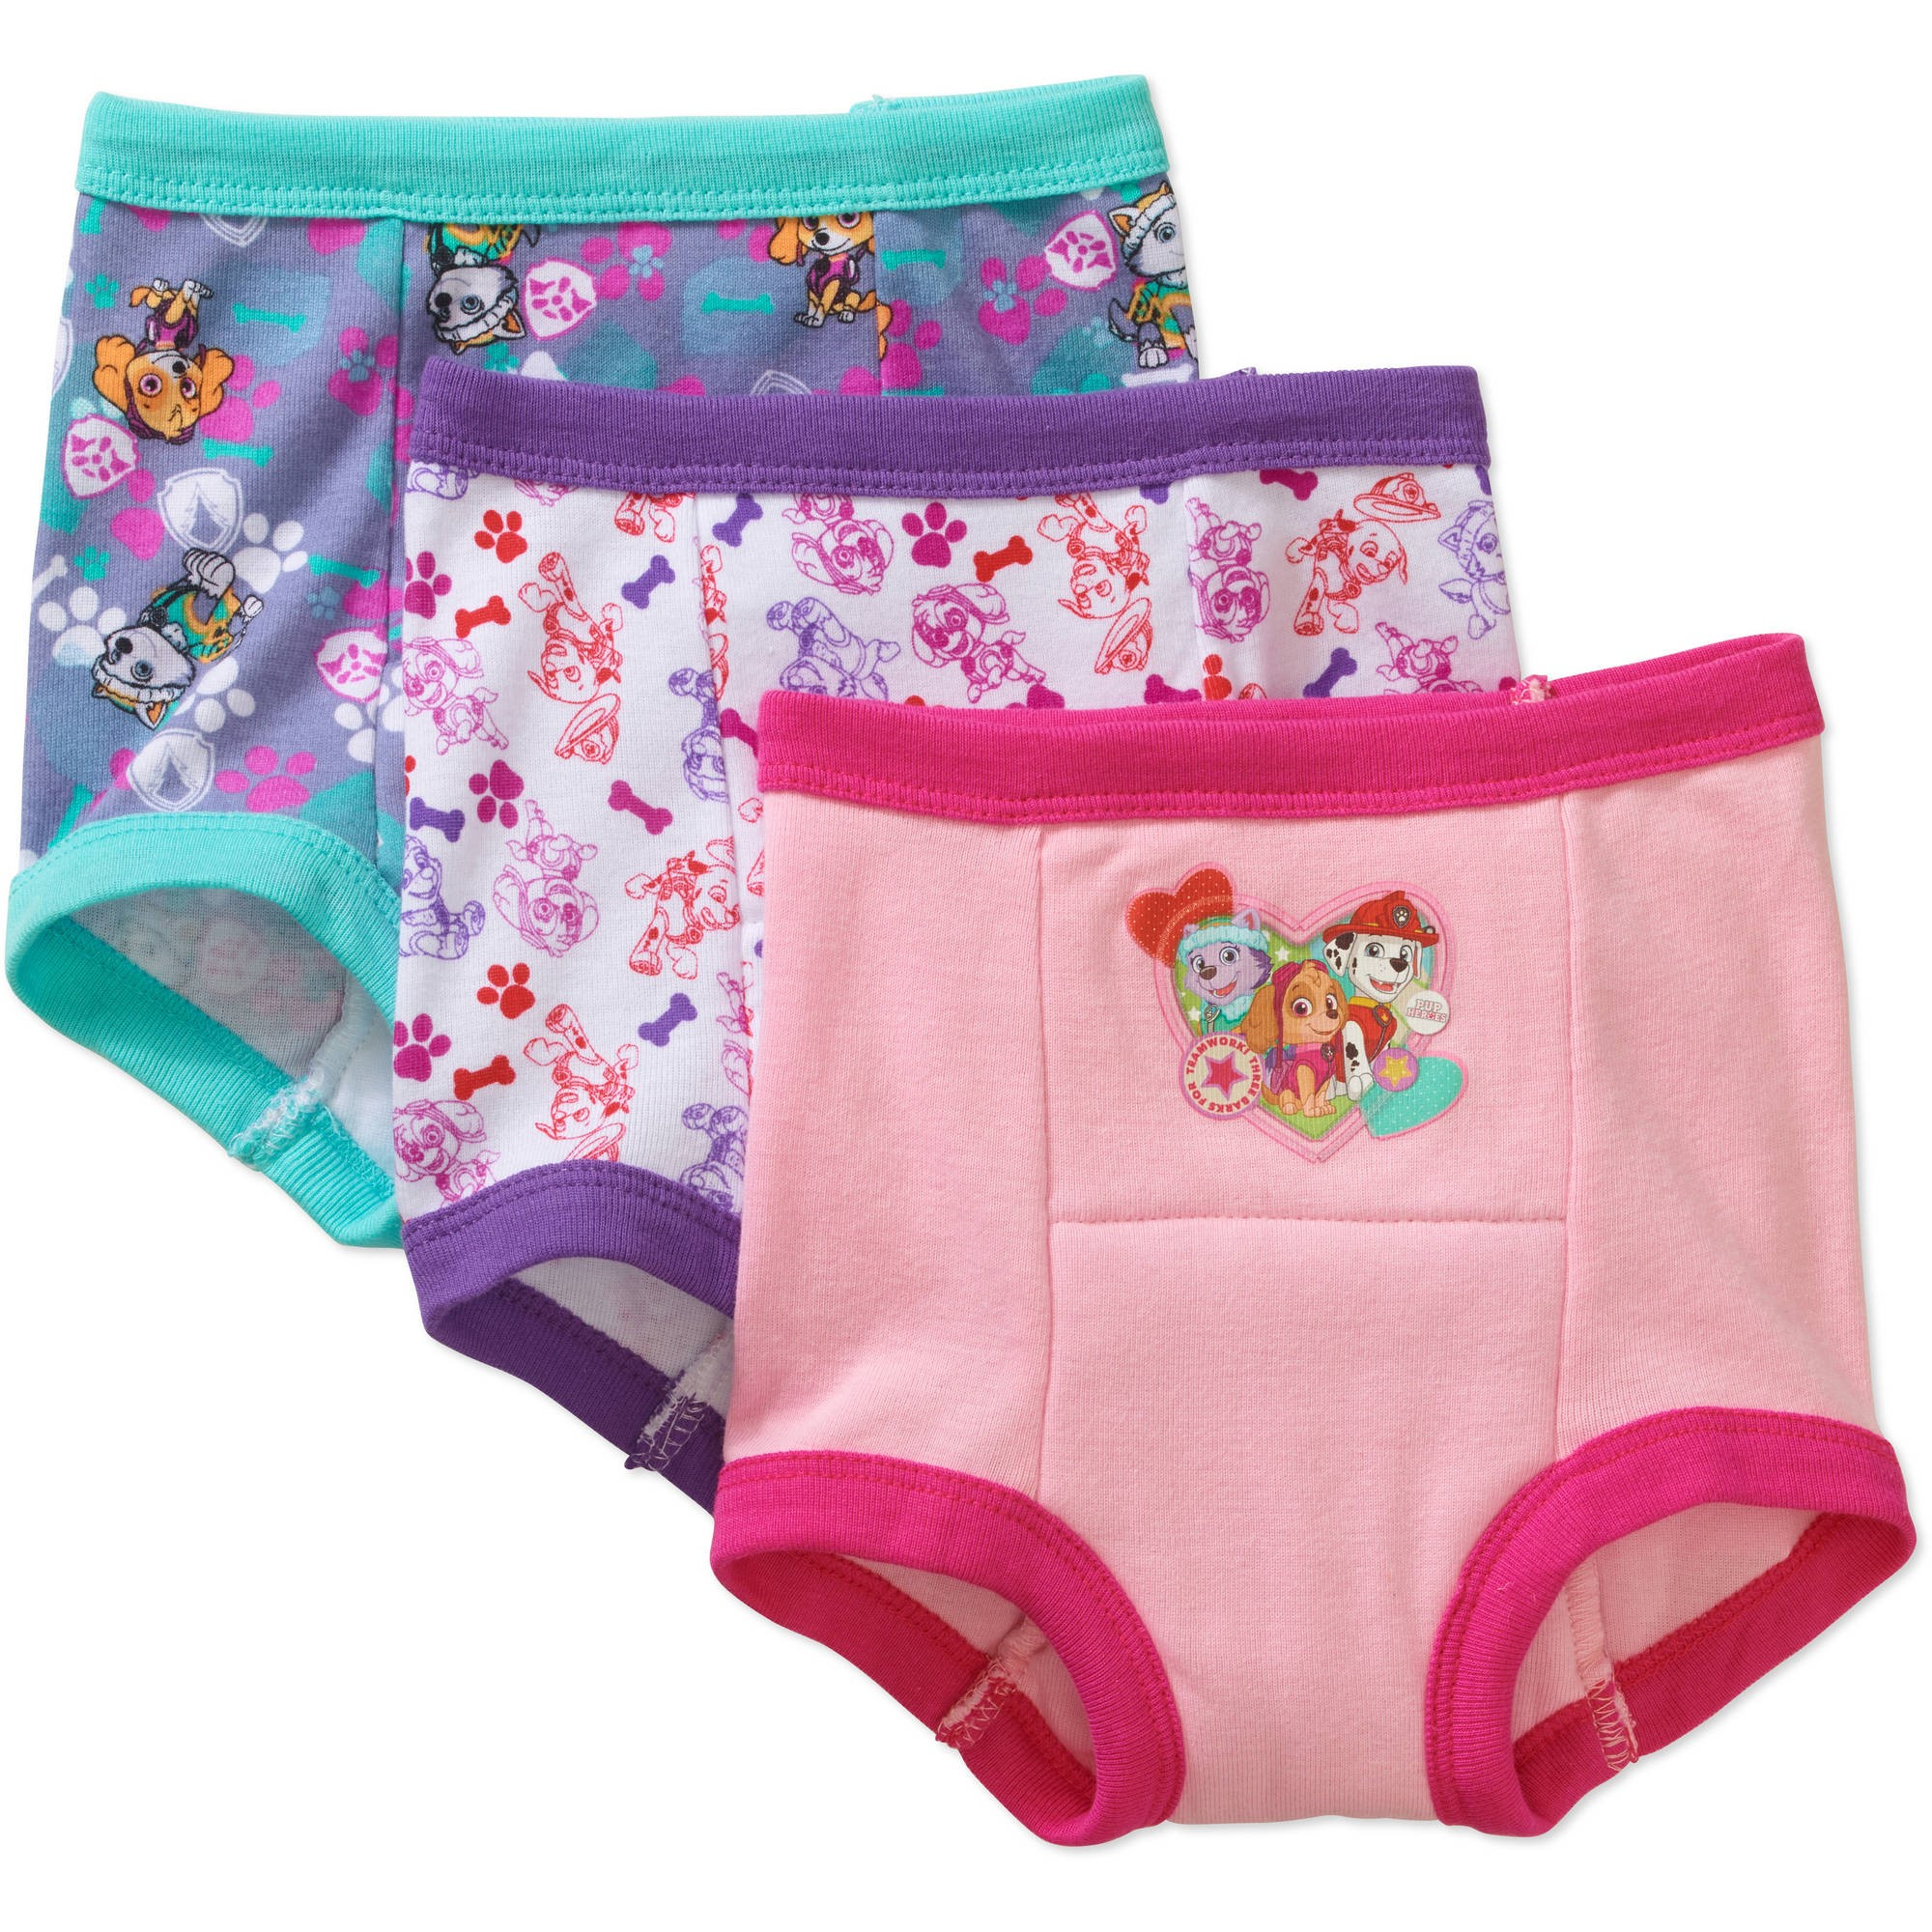 Paw Patrol Toddler Girls' Training Pants, 2T, 3 Pack